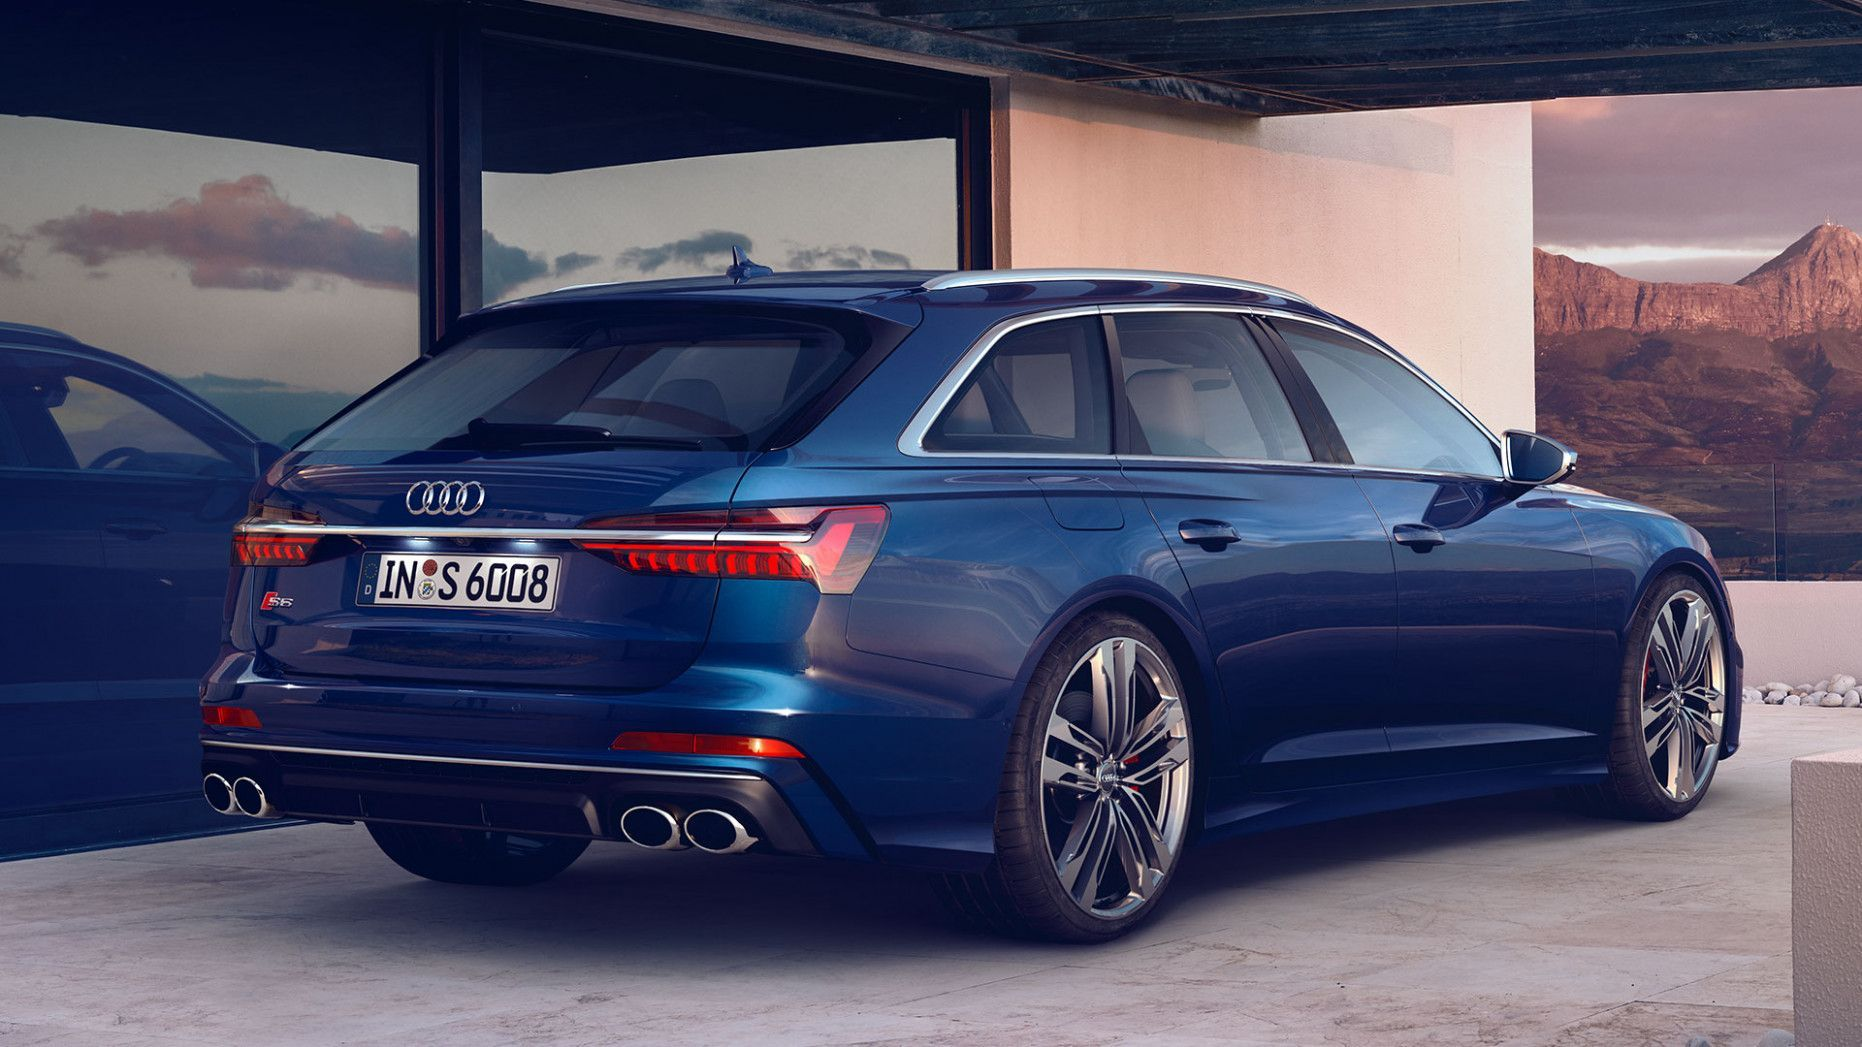 2020 Audi S6 0 60 From Car And Driver9 Audi S9 Tdi Visits Abt And Leaves With More Power 2020 Audi S6 0 60 2020 Audi S6 0 Audi S6 Audi New Engine